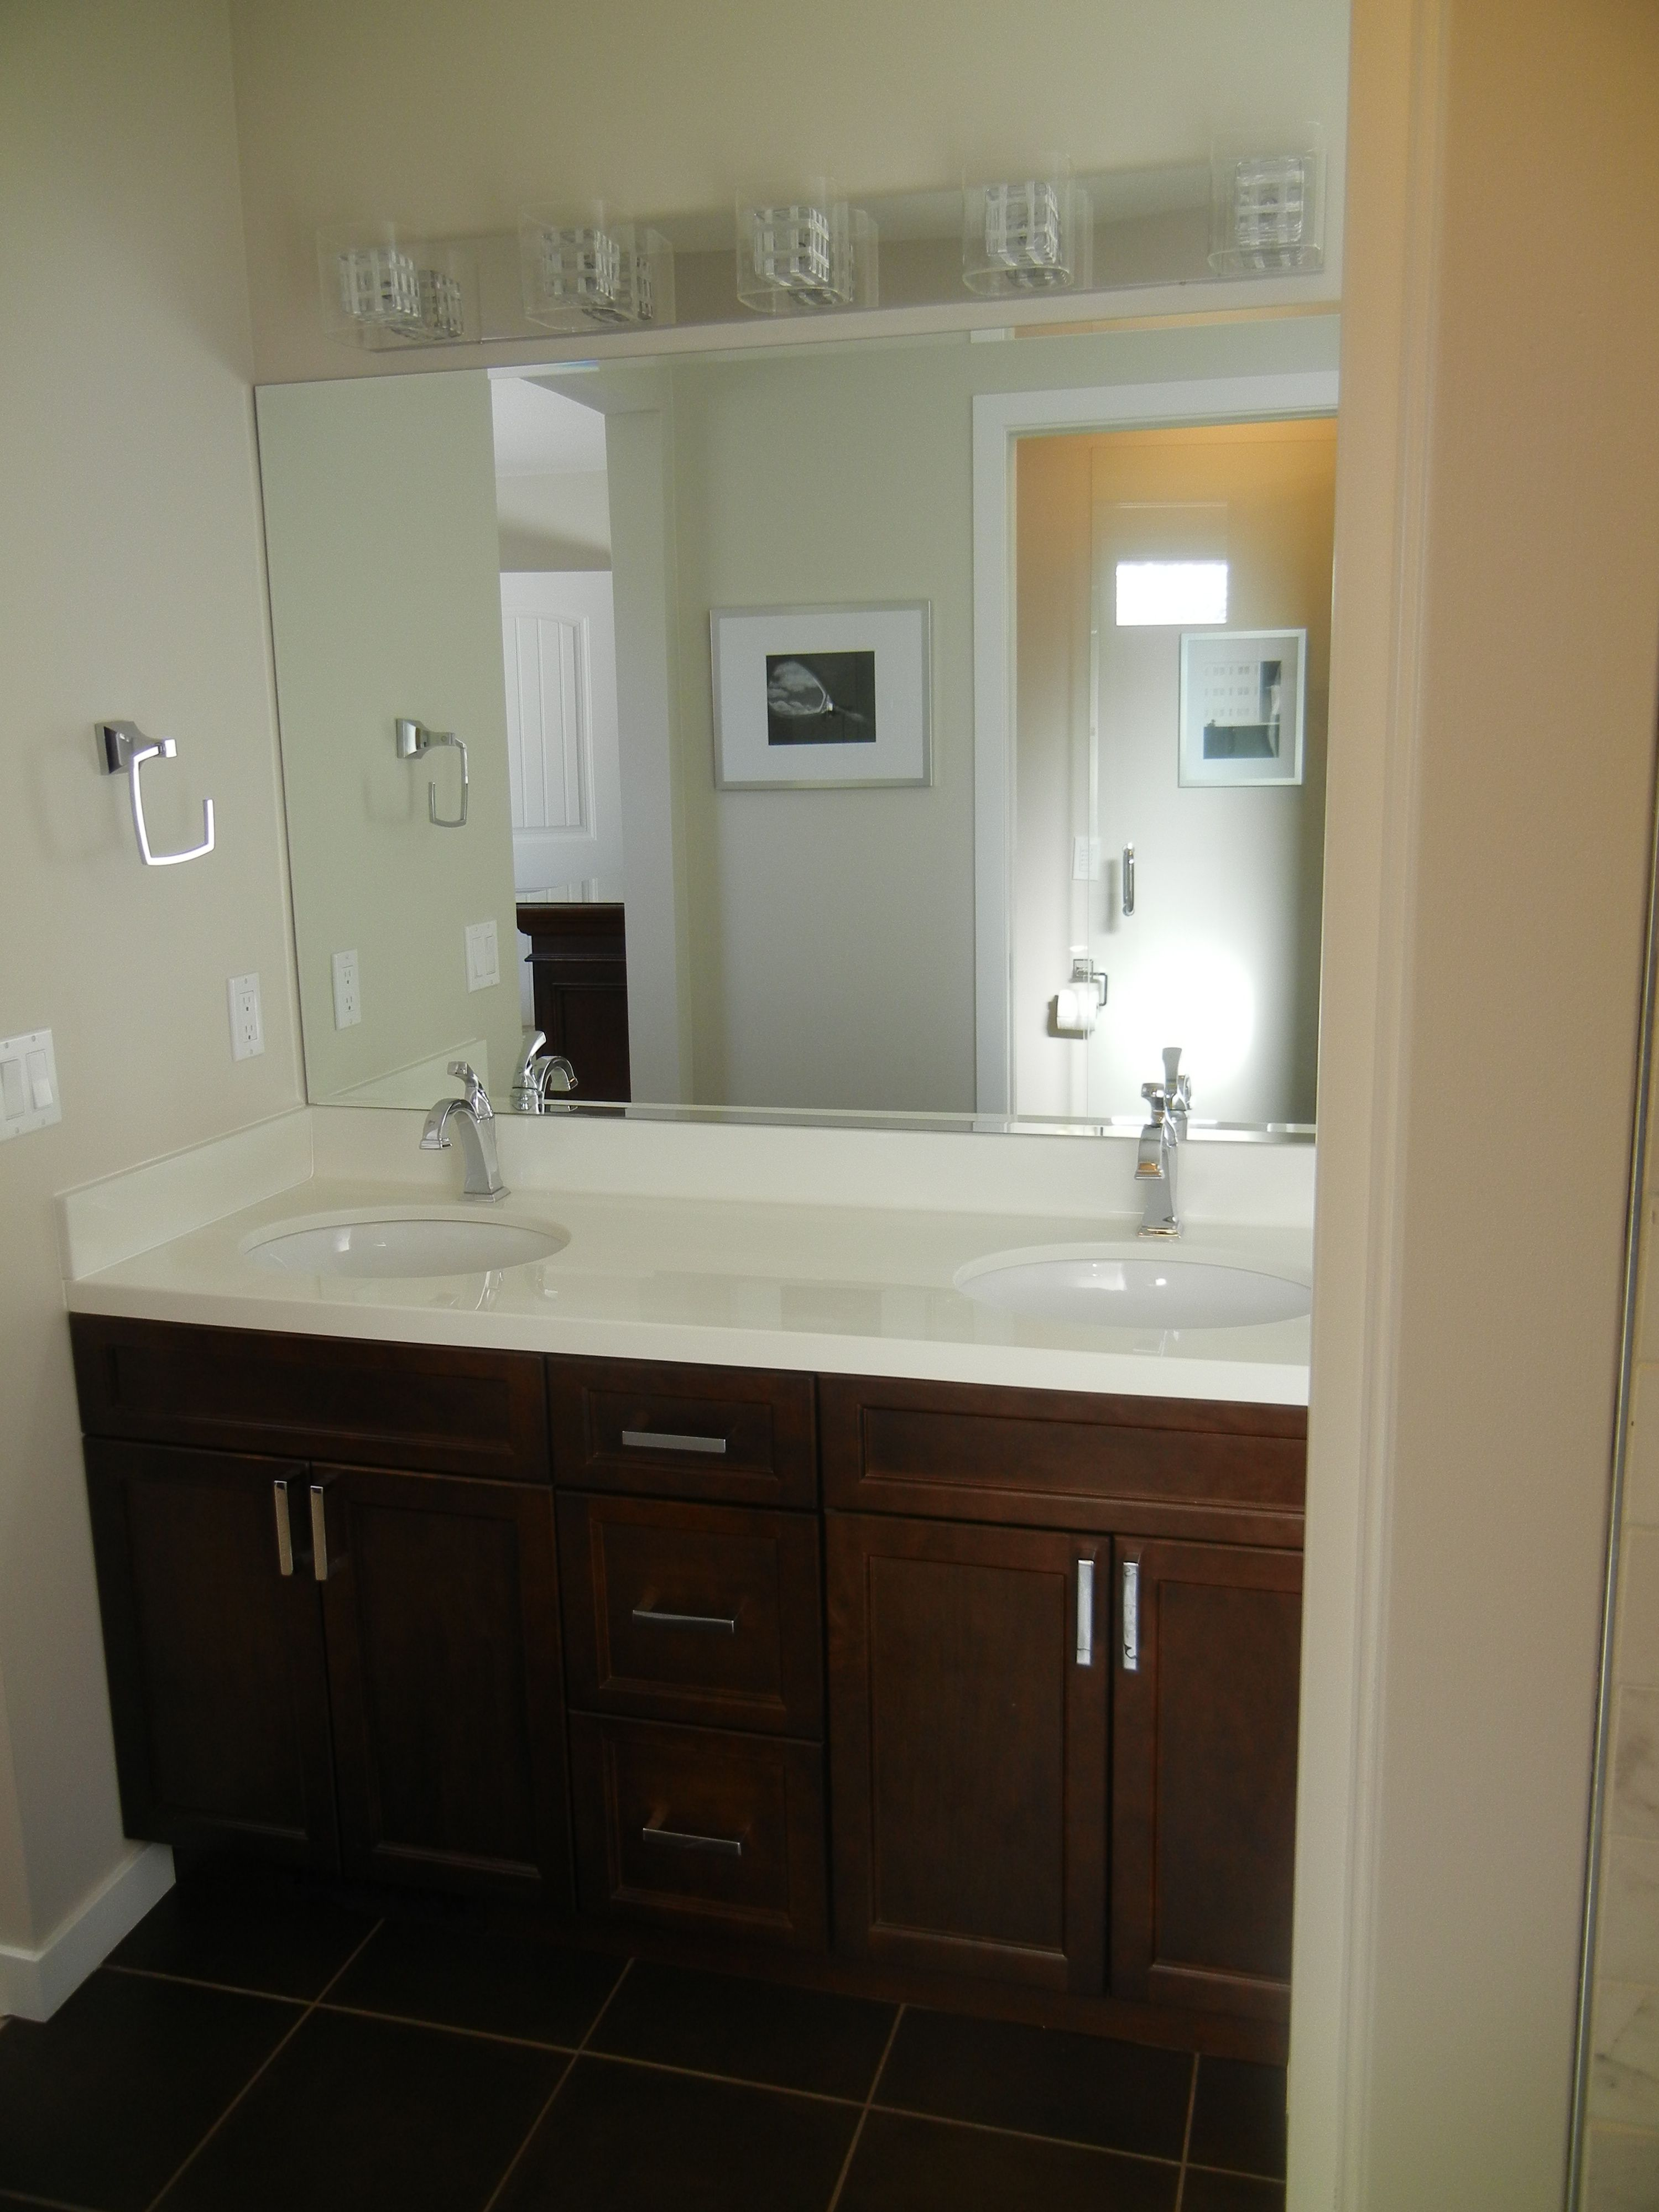 Douglasdale Bathroom Vanity Undermount Sink Faucet Bathroom - A1 bathroom renovations